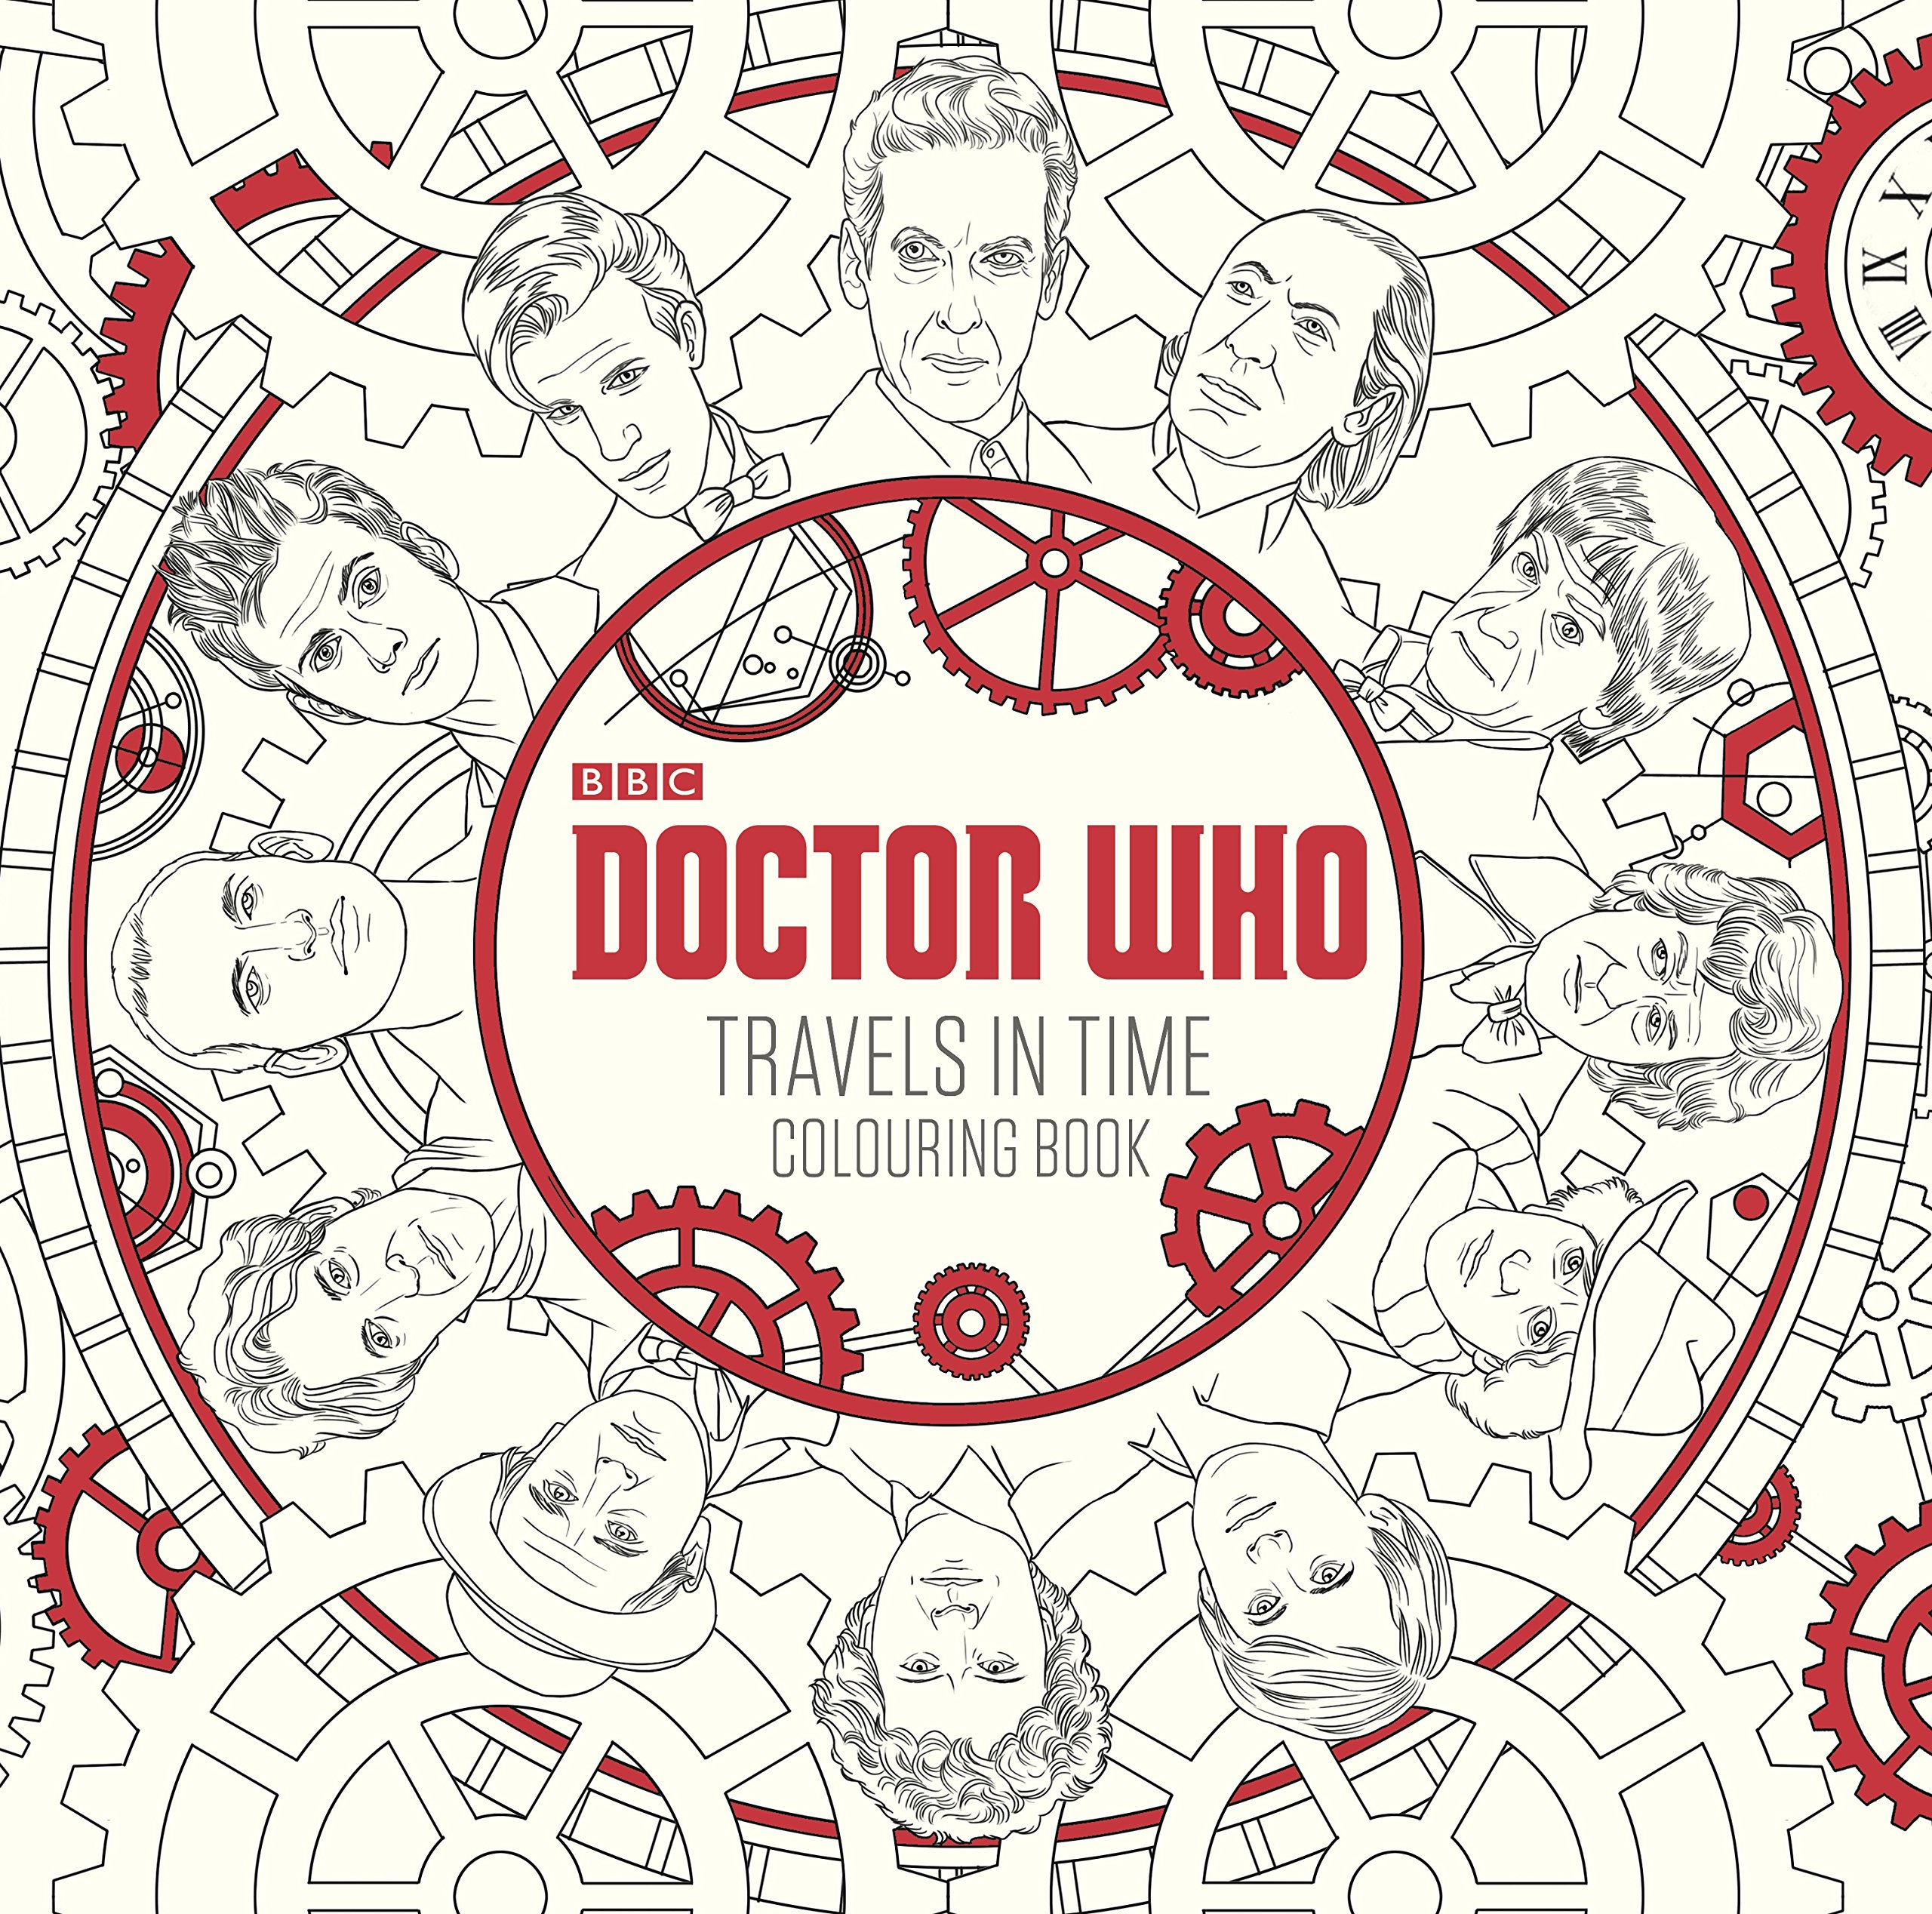 Doctor Who Travels In Time Colouring Book Amazoncouk Harry